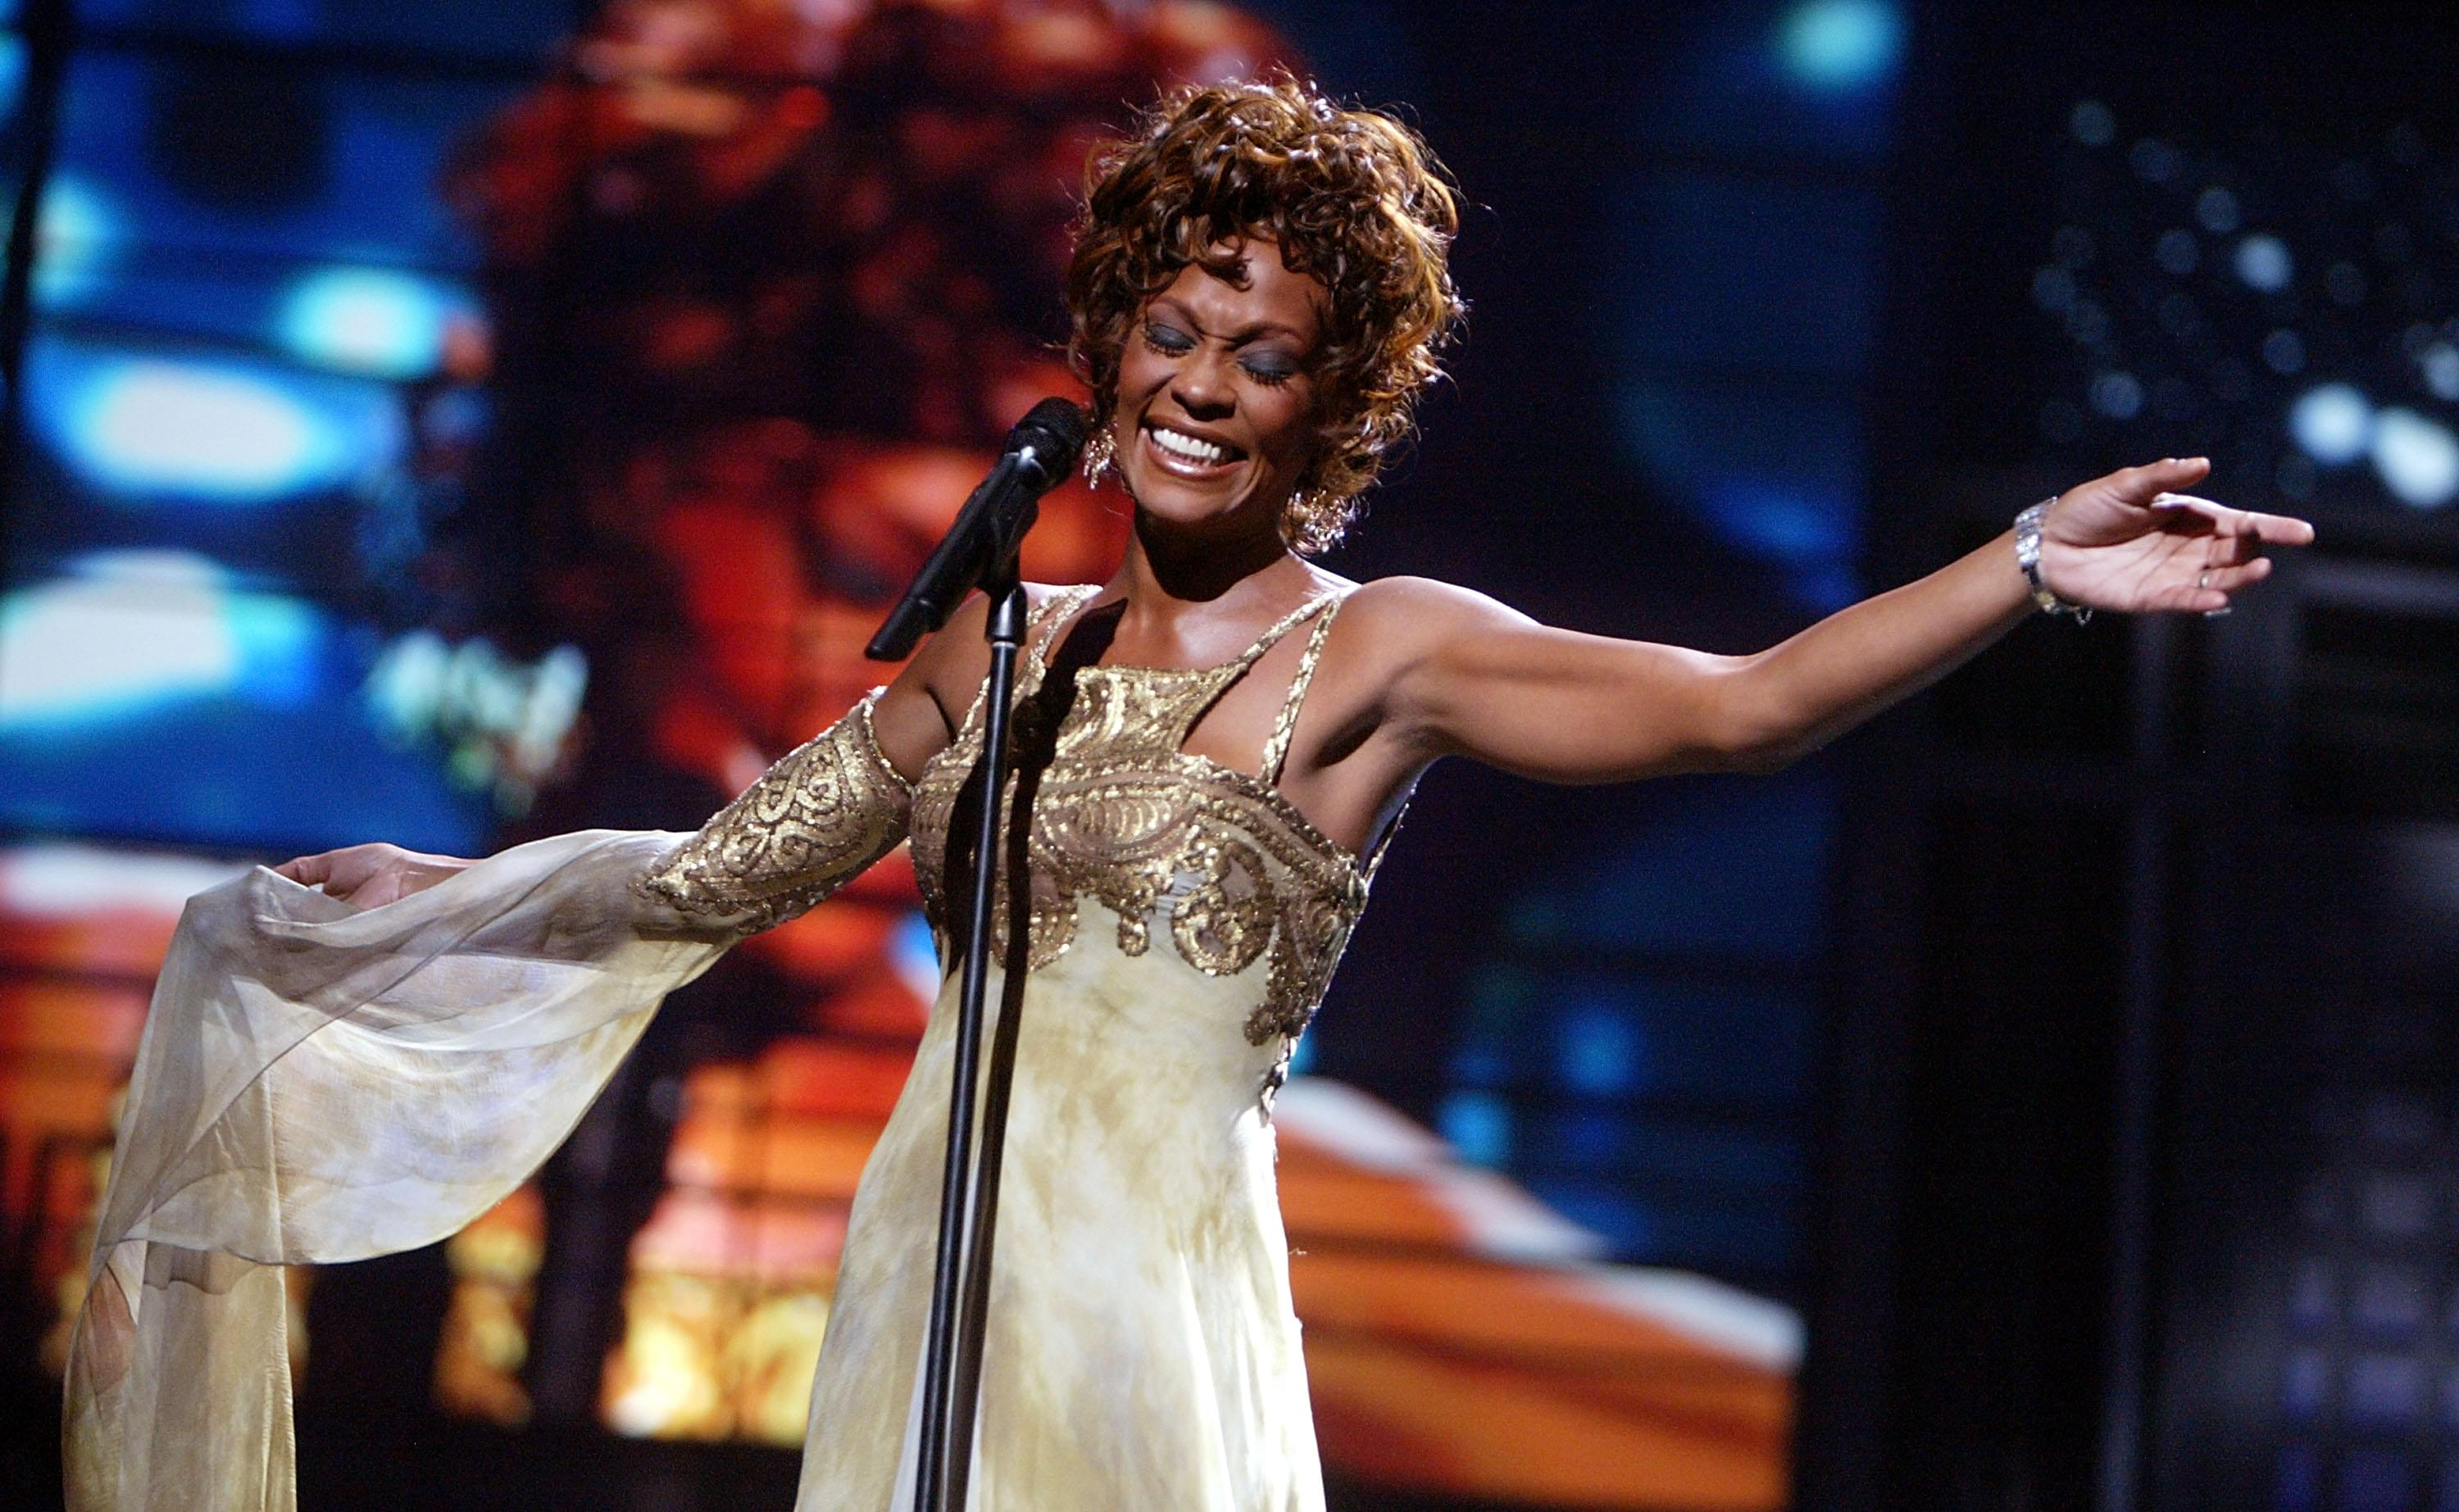 whitney houston kevin winter getty images 1 The 30 Most Haunting Final Tweets By Celebrities